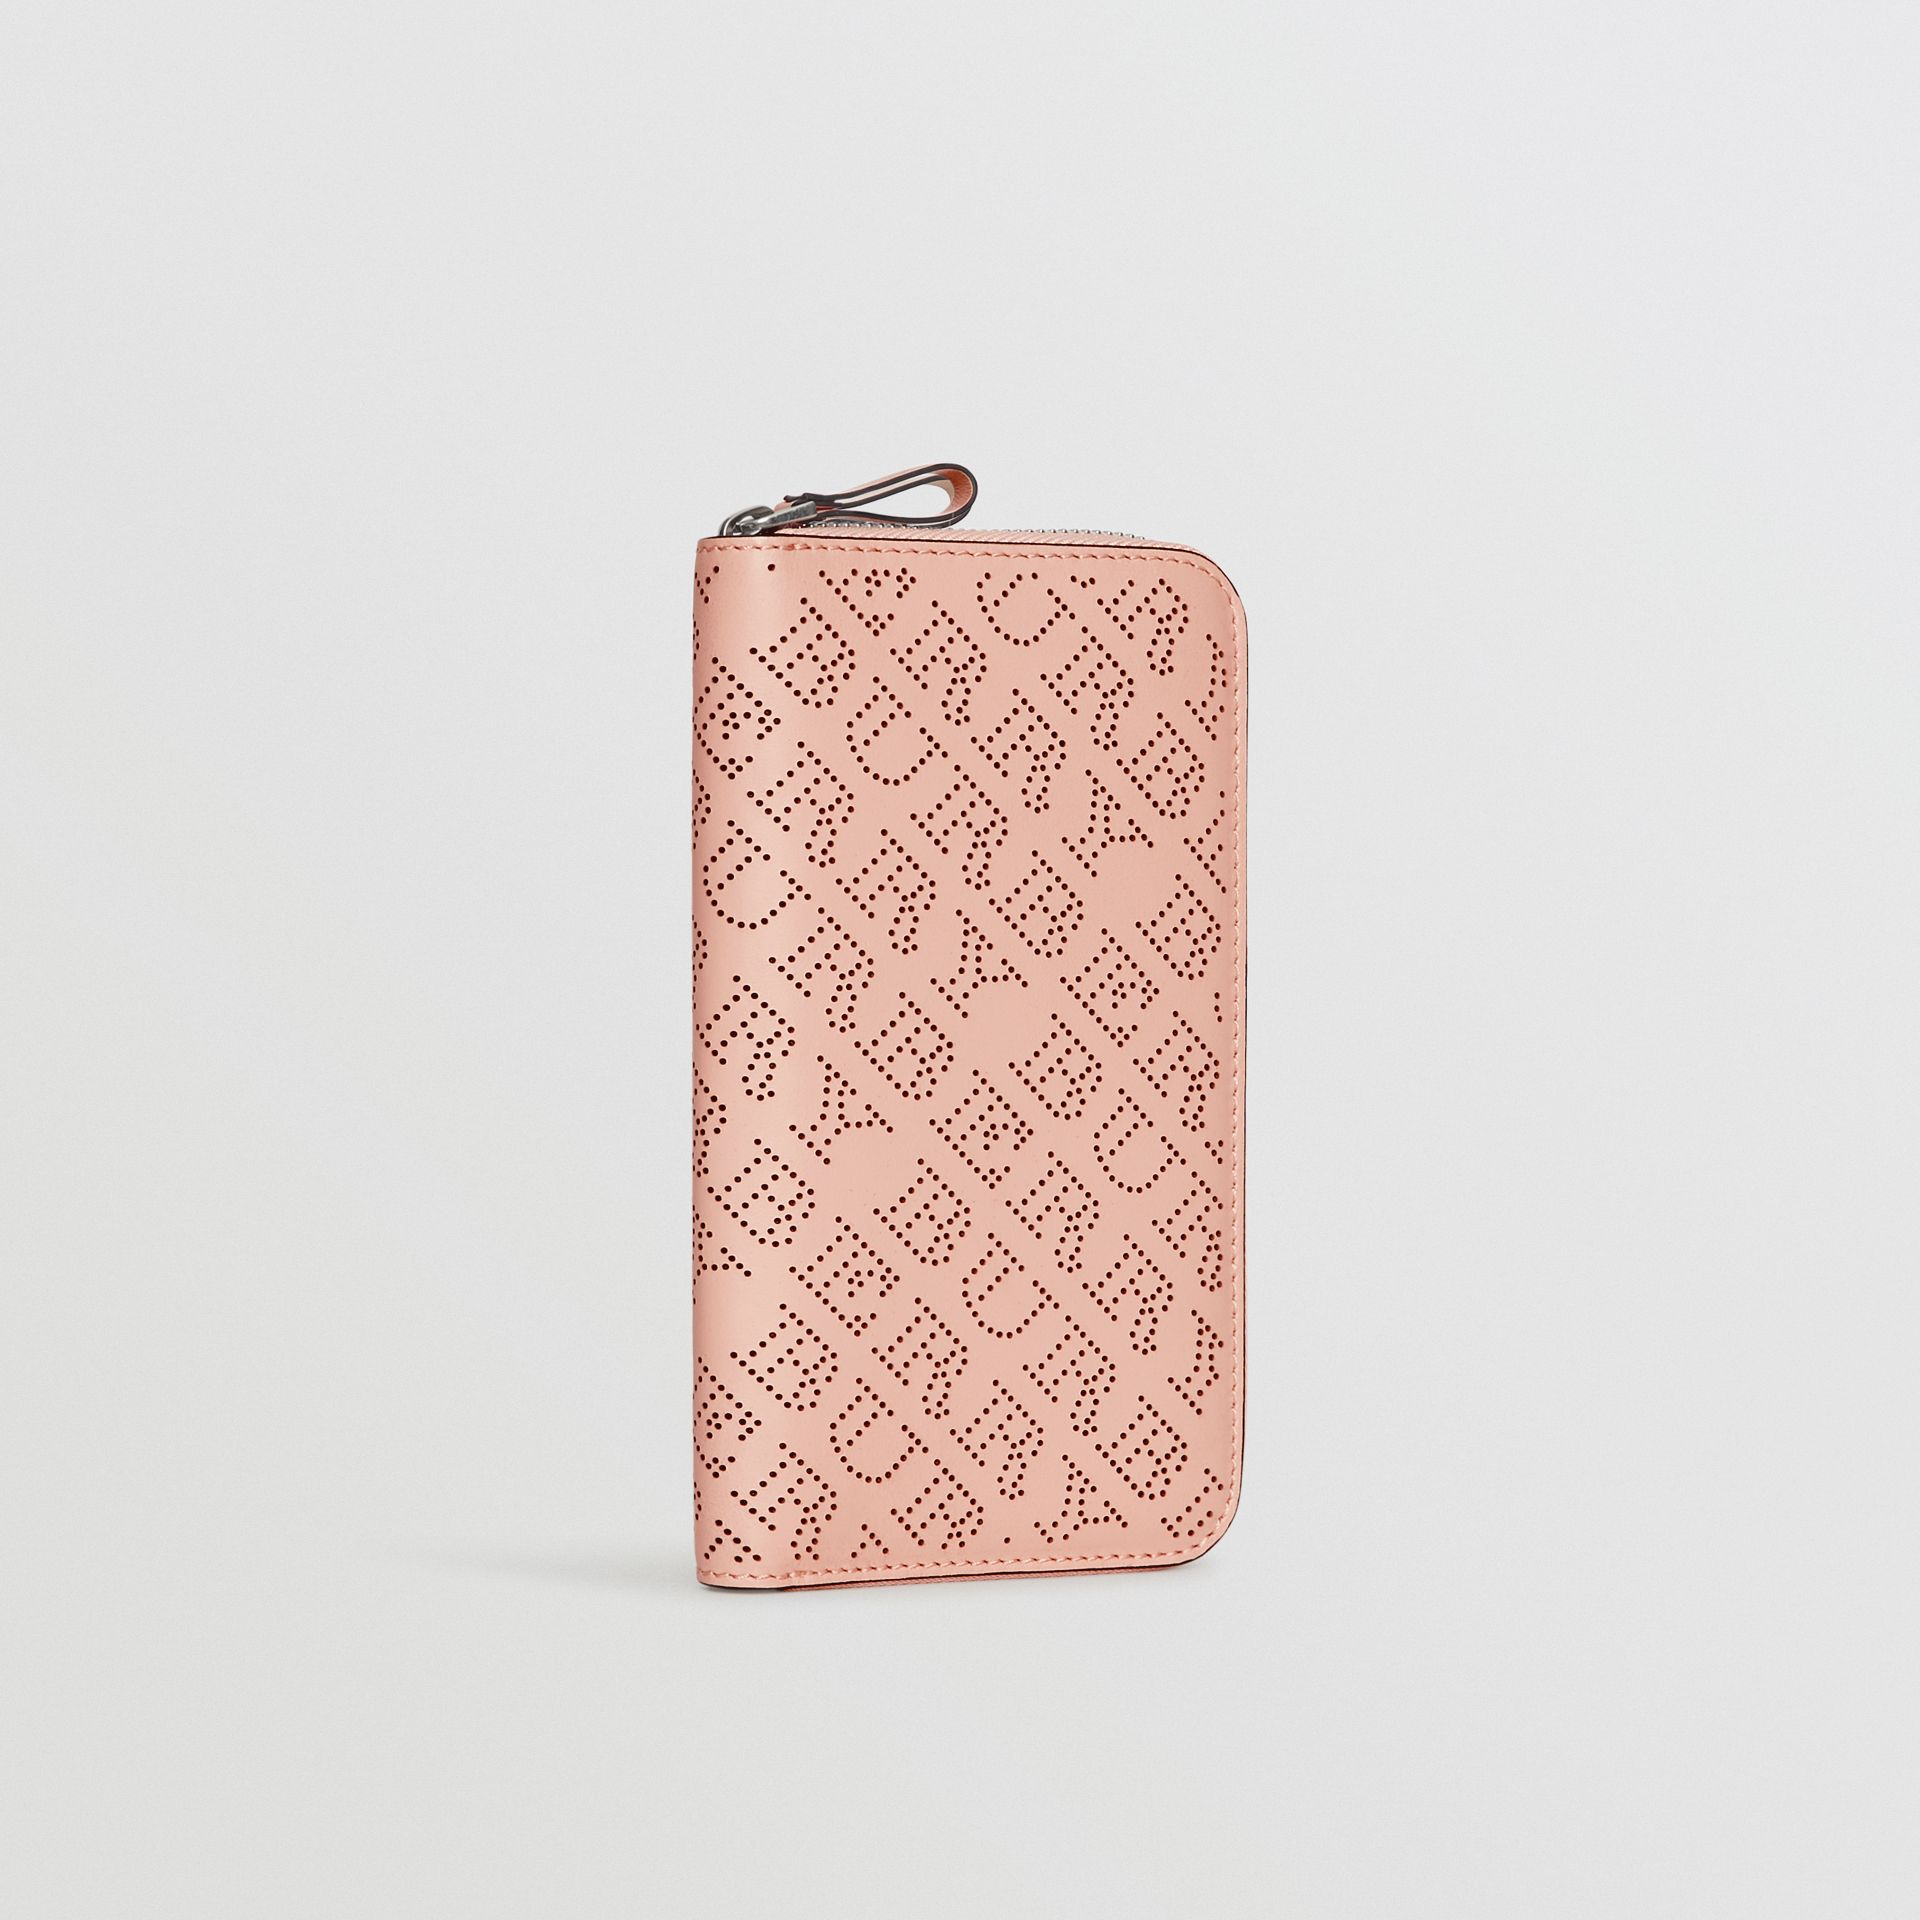 Perforated Leather Ziparound Wallet in Pale Fawn Pink - Women | Burberry - gallery image 4